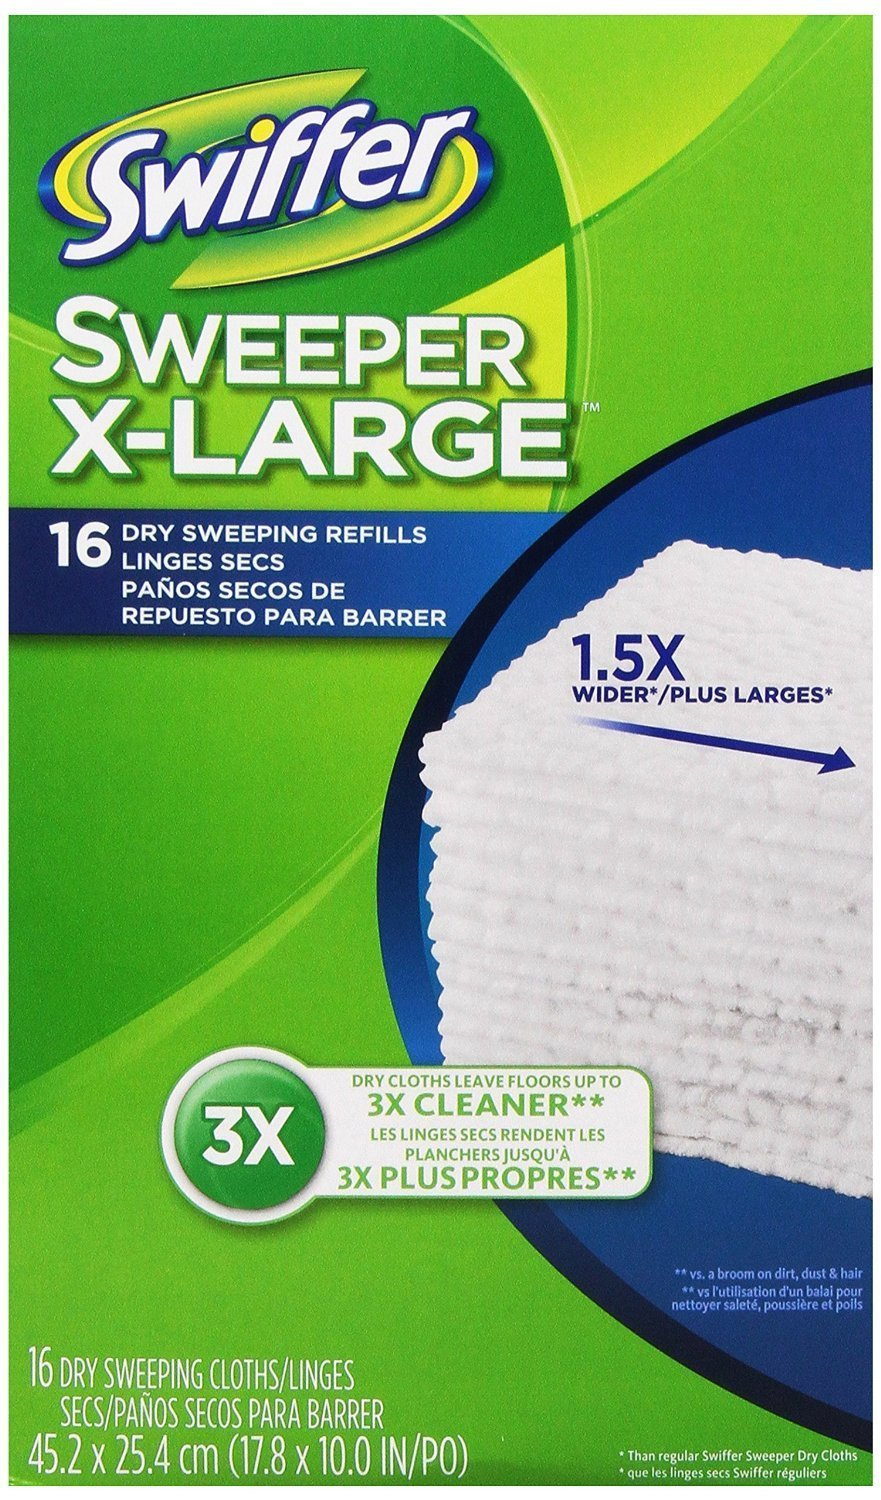 Swiffer Sweeper X-Large Dry Sweeping Cloths Refill, Unscented, 16-Count (Pack of 6) (Packaging May Vary)